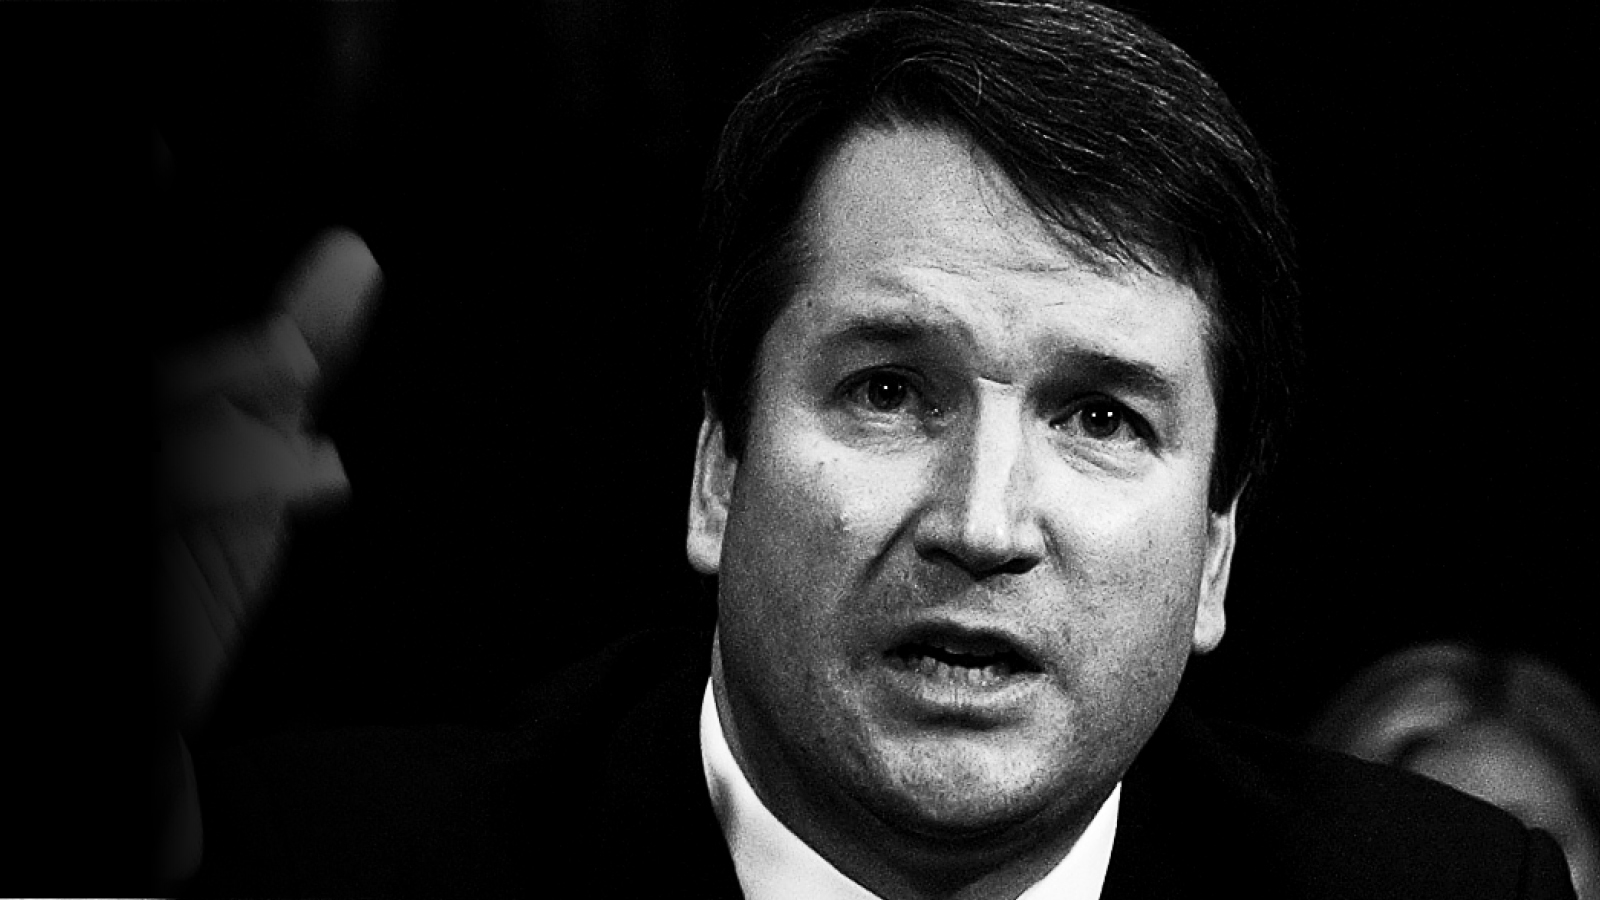 Trump picks conservative Brett Kavanaugh for Supreme Court